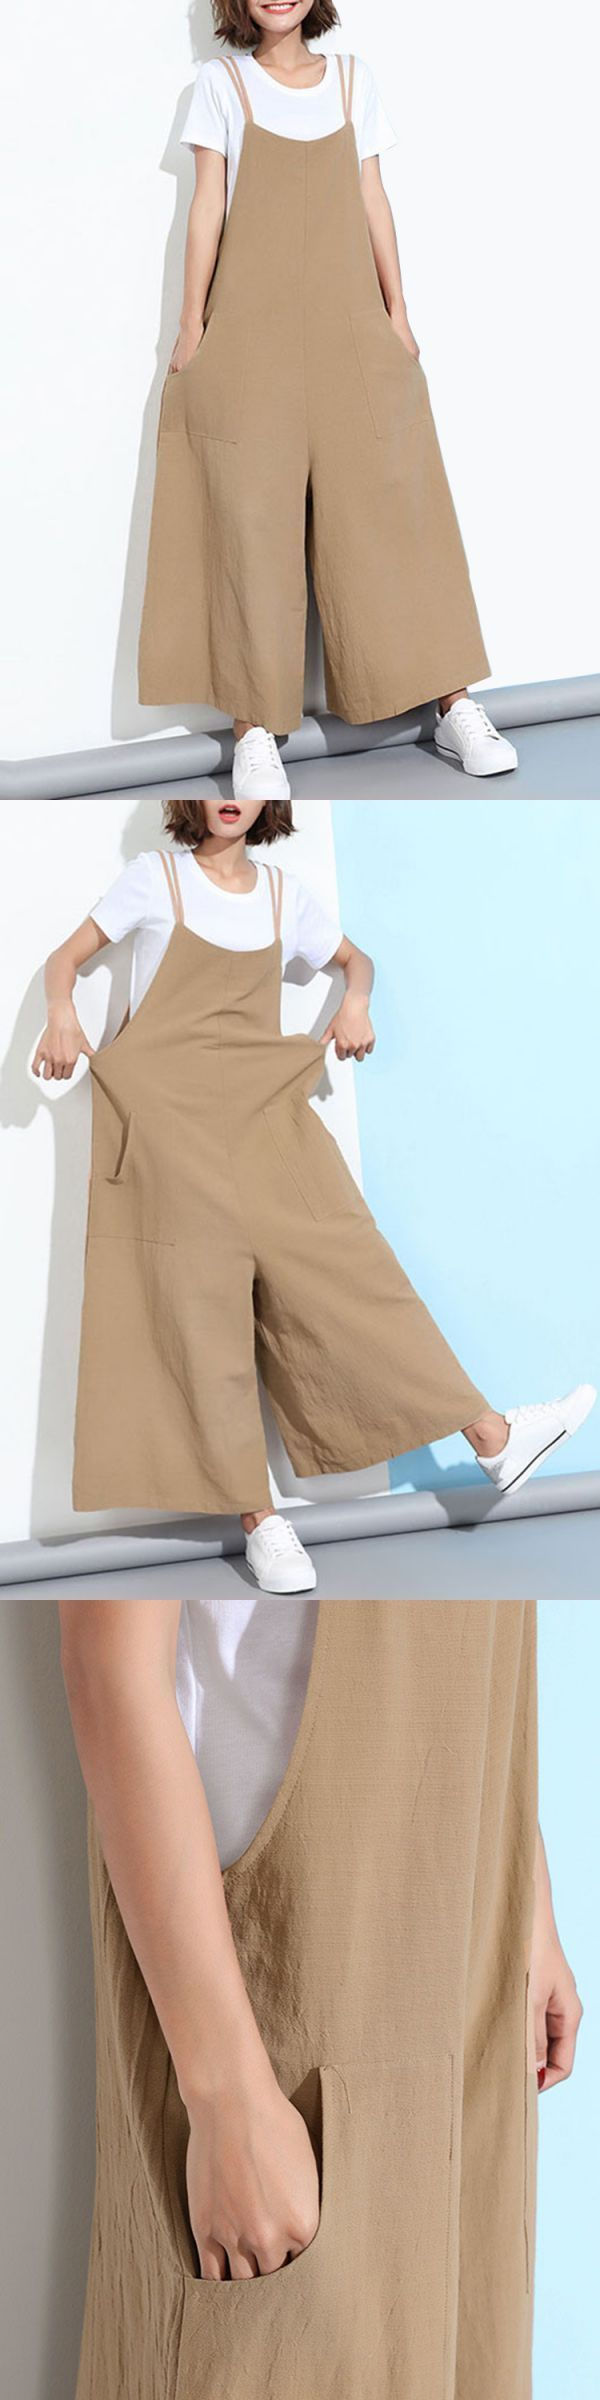 Loose casual women pure color wide-leg overalls with pocket jumpsuits and playsuits online india #jumpsuits #amp; #playsuits #jumpsuits #playsuits #womens #clothing #playsuits #and #jumpsuits